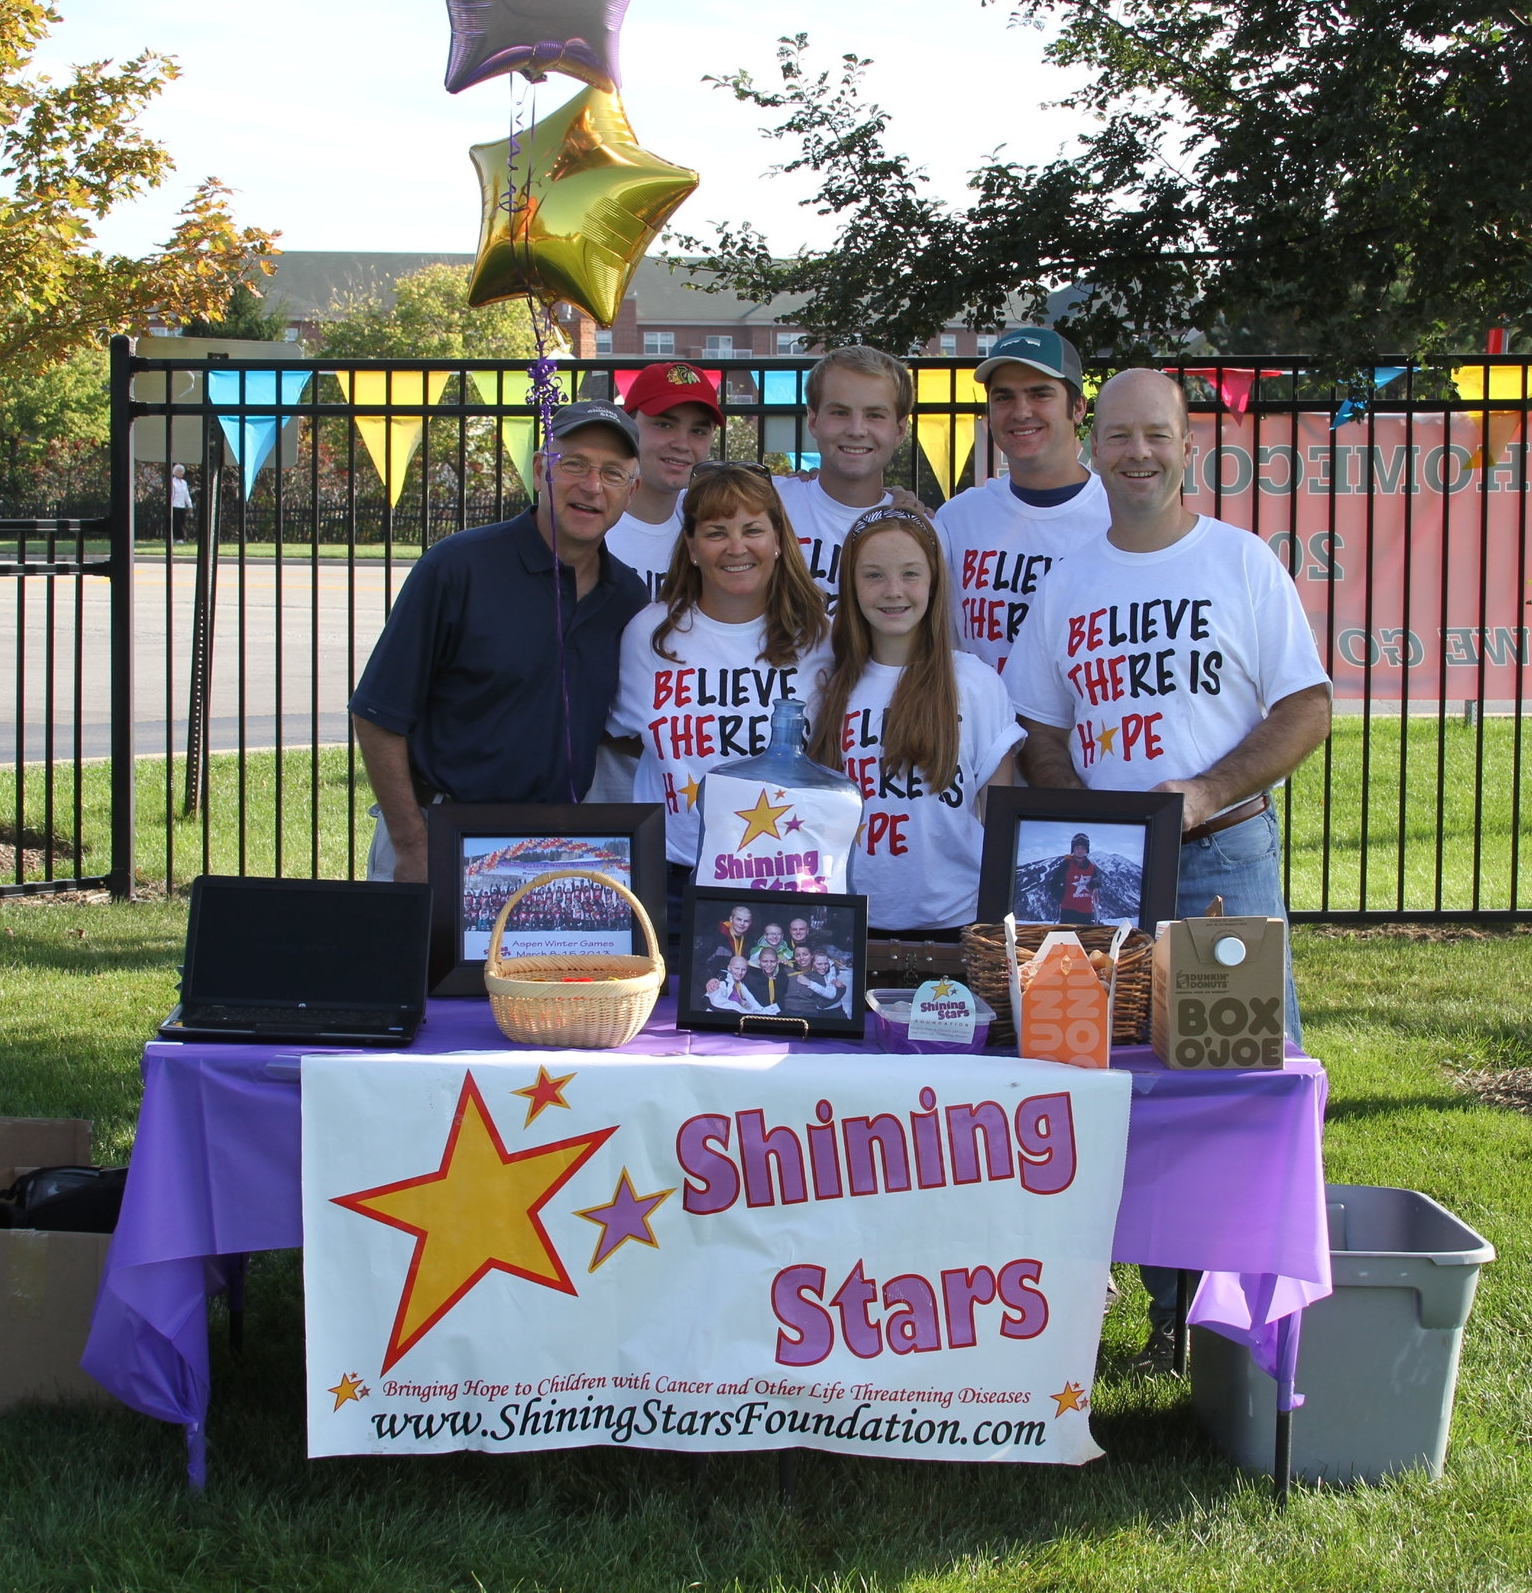 Bennett and his family organized an event to raise awareness for Shining Stars